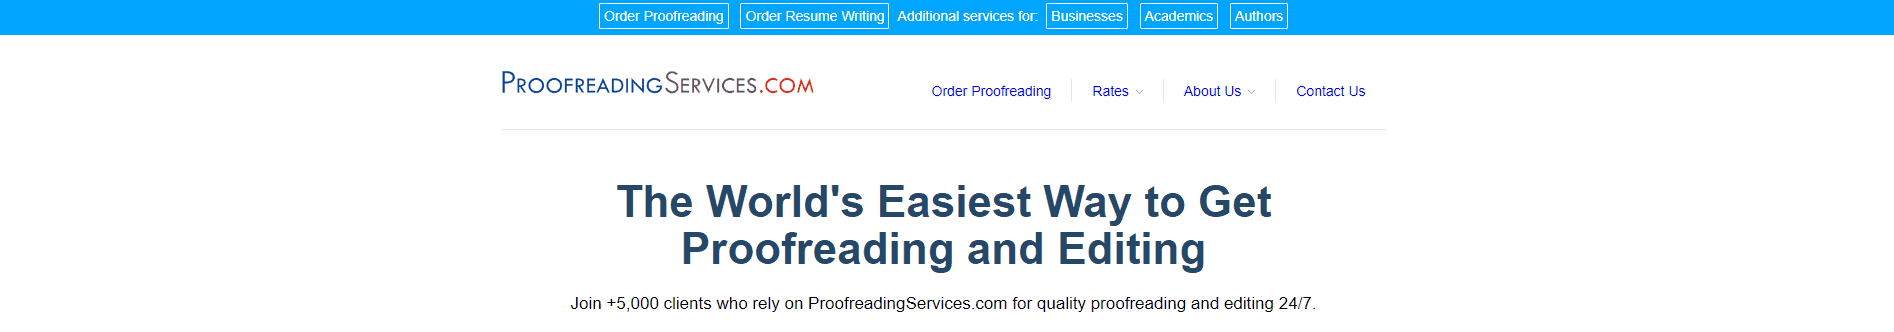 Proofreading Services Screenshot for Online Proofreading Jobs